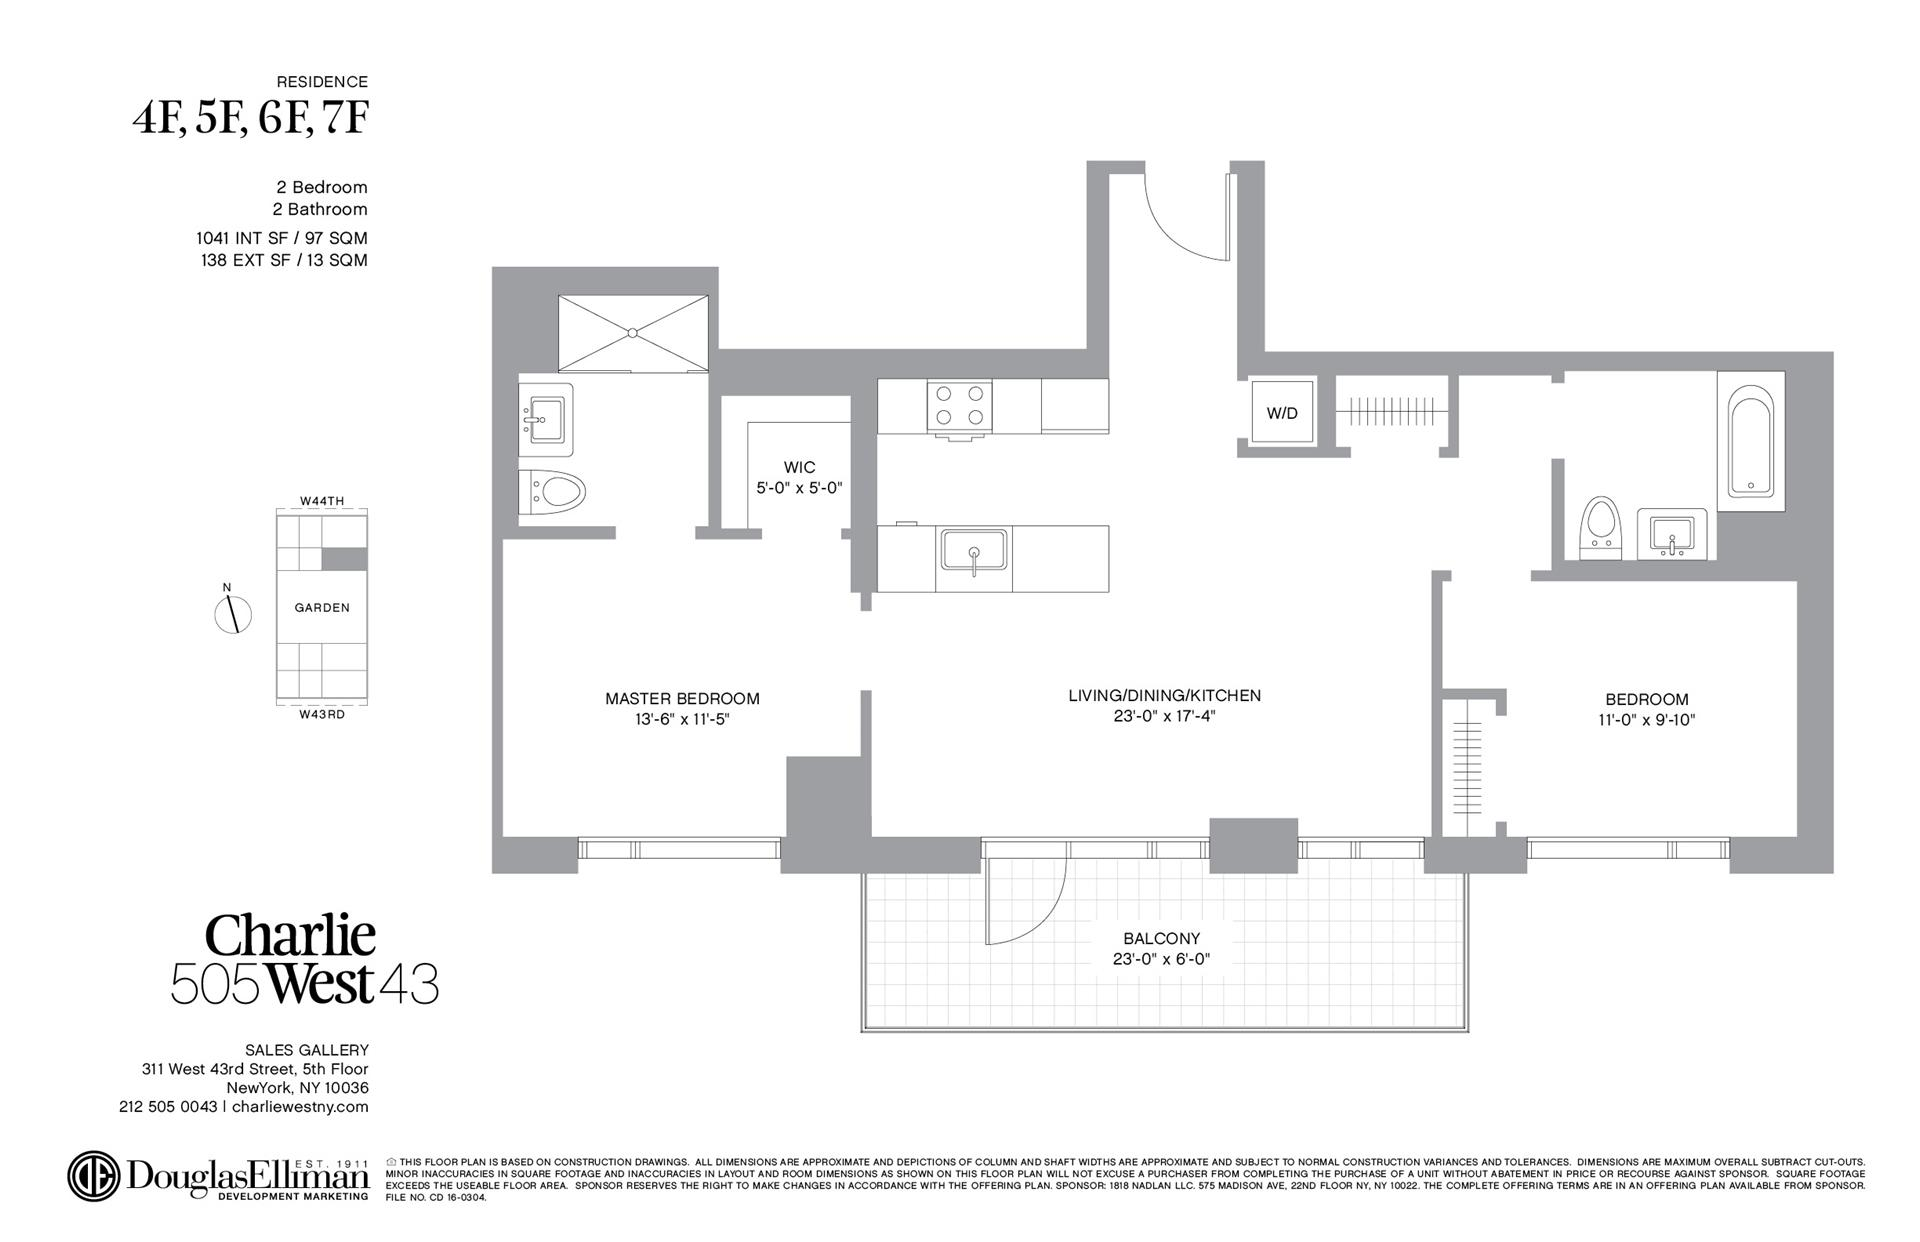 Floor plan of 505 West 43rd St, 4F - Clinton, New York